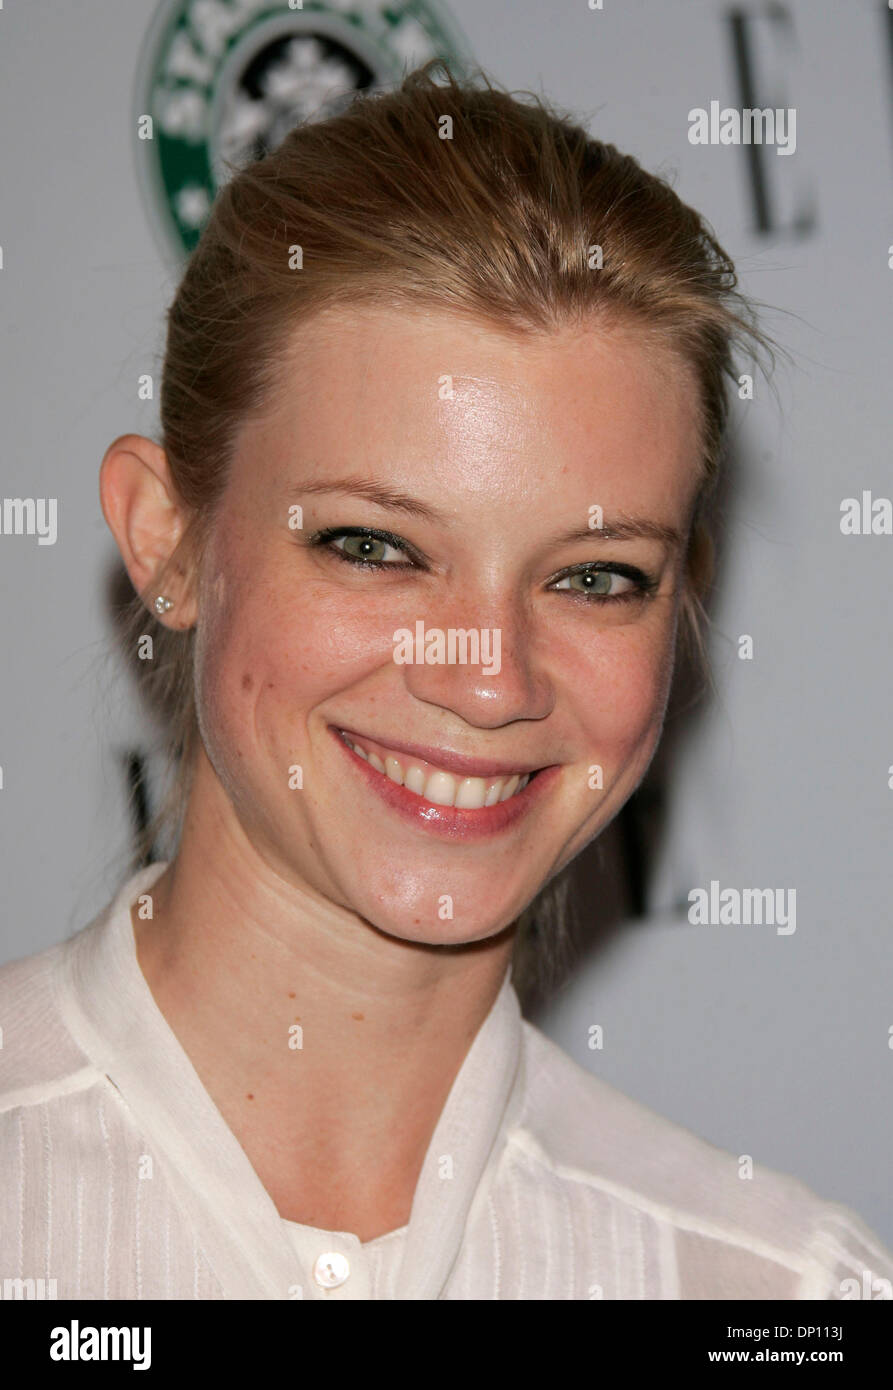 Amy Smart Hot Images apr 11, 2006; west hollywood, california, usa; actress amy